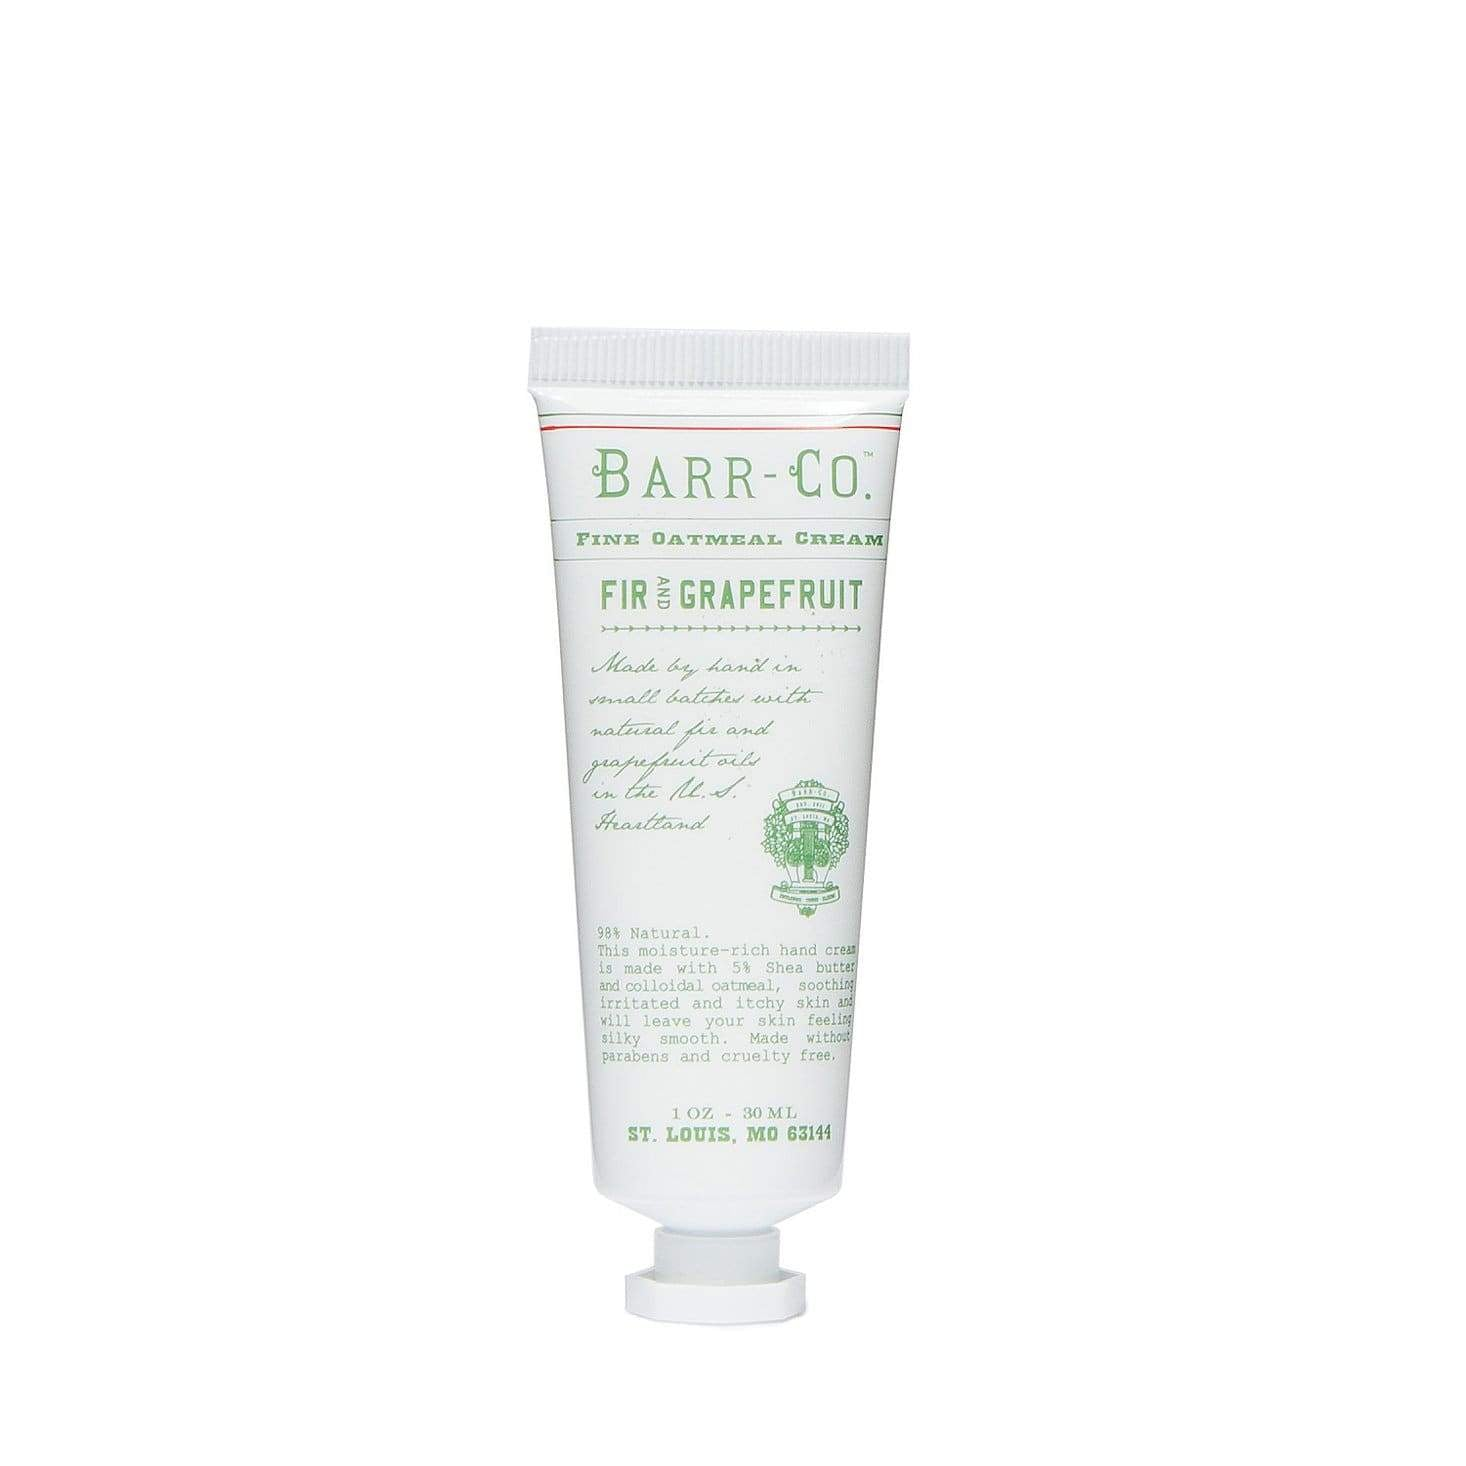 Barr-Co Fir & Grapefruit Mini Hand Cream